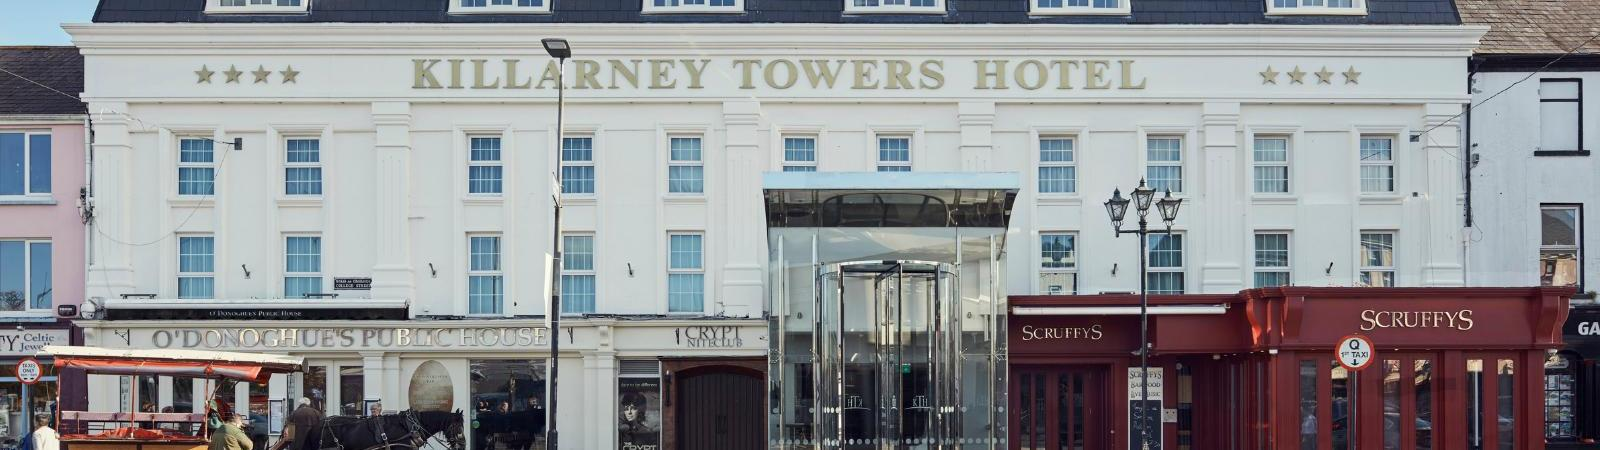 careers in Killarney Towers Hotel